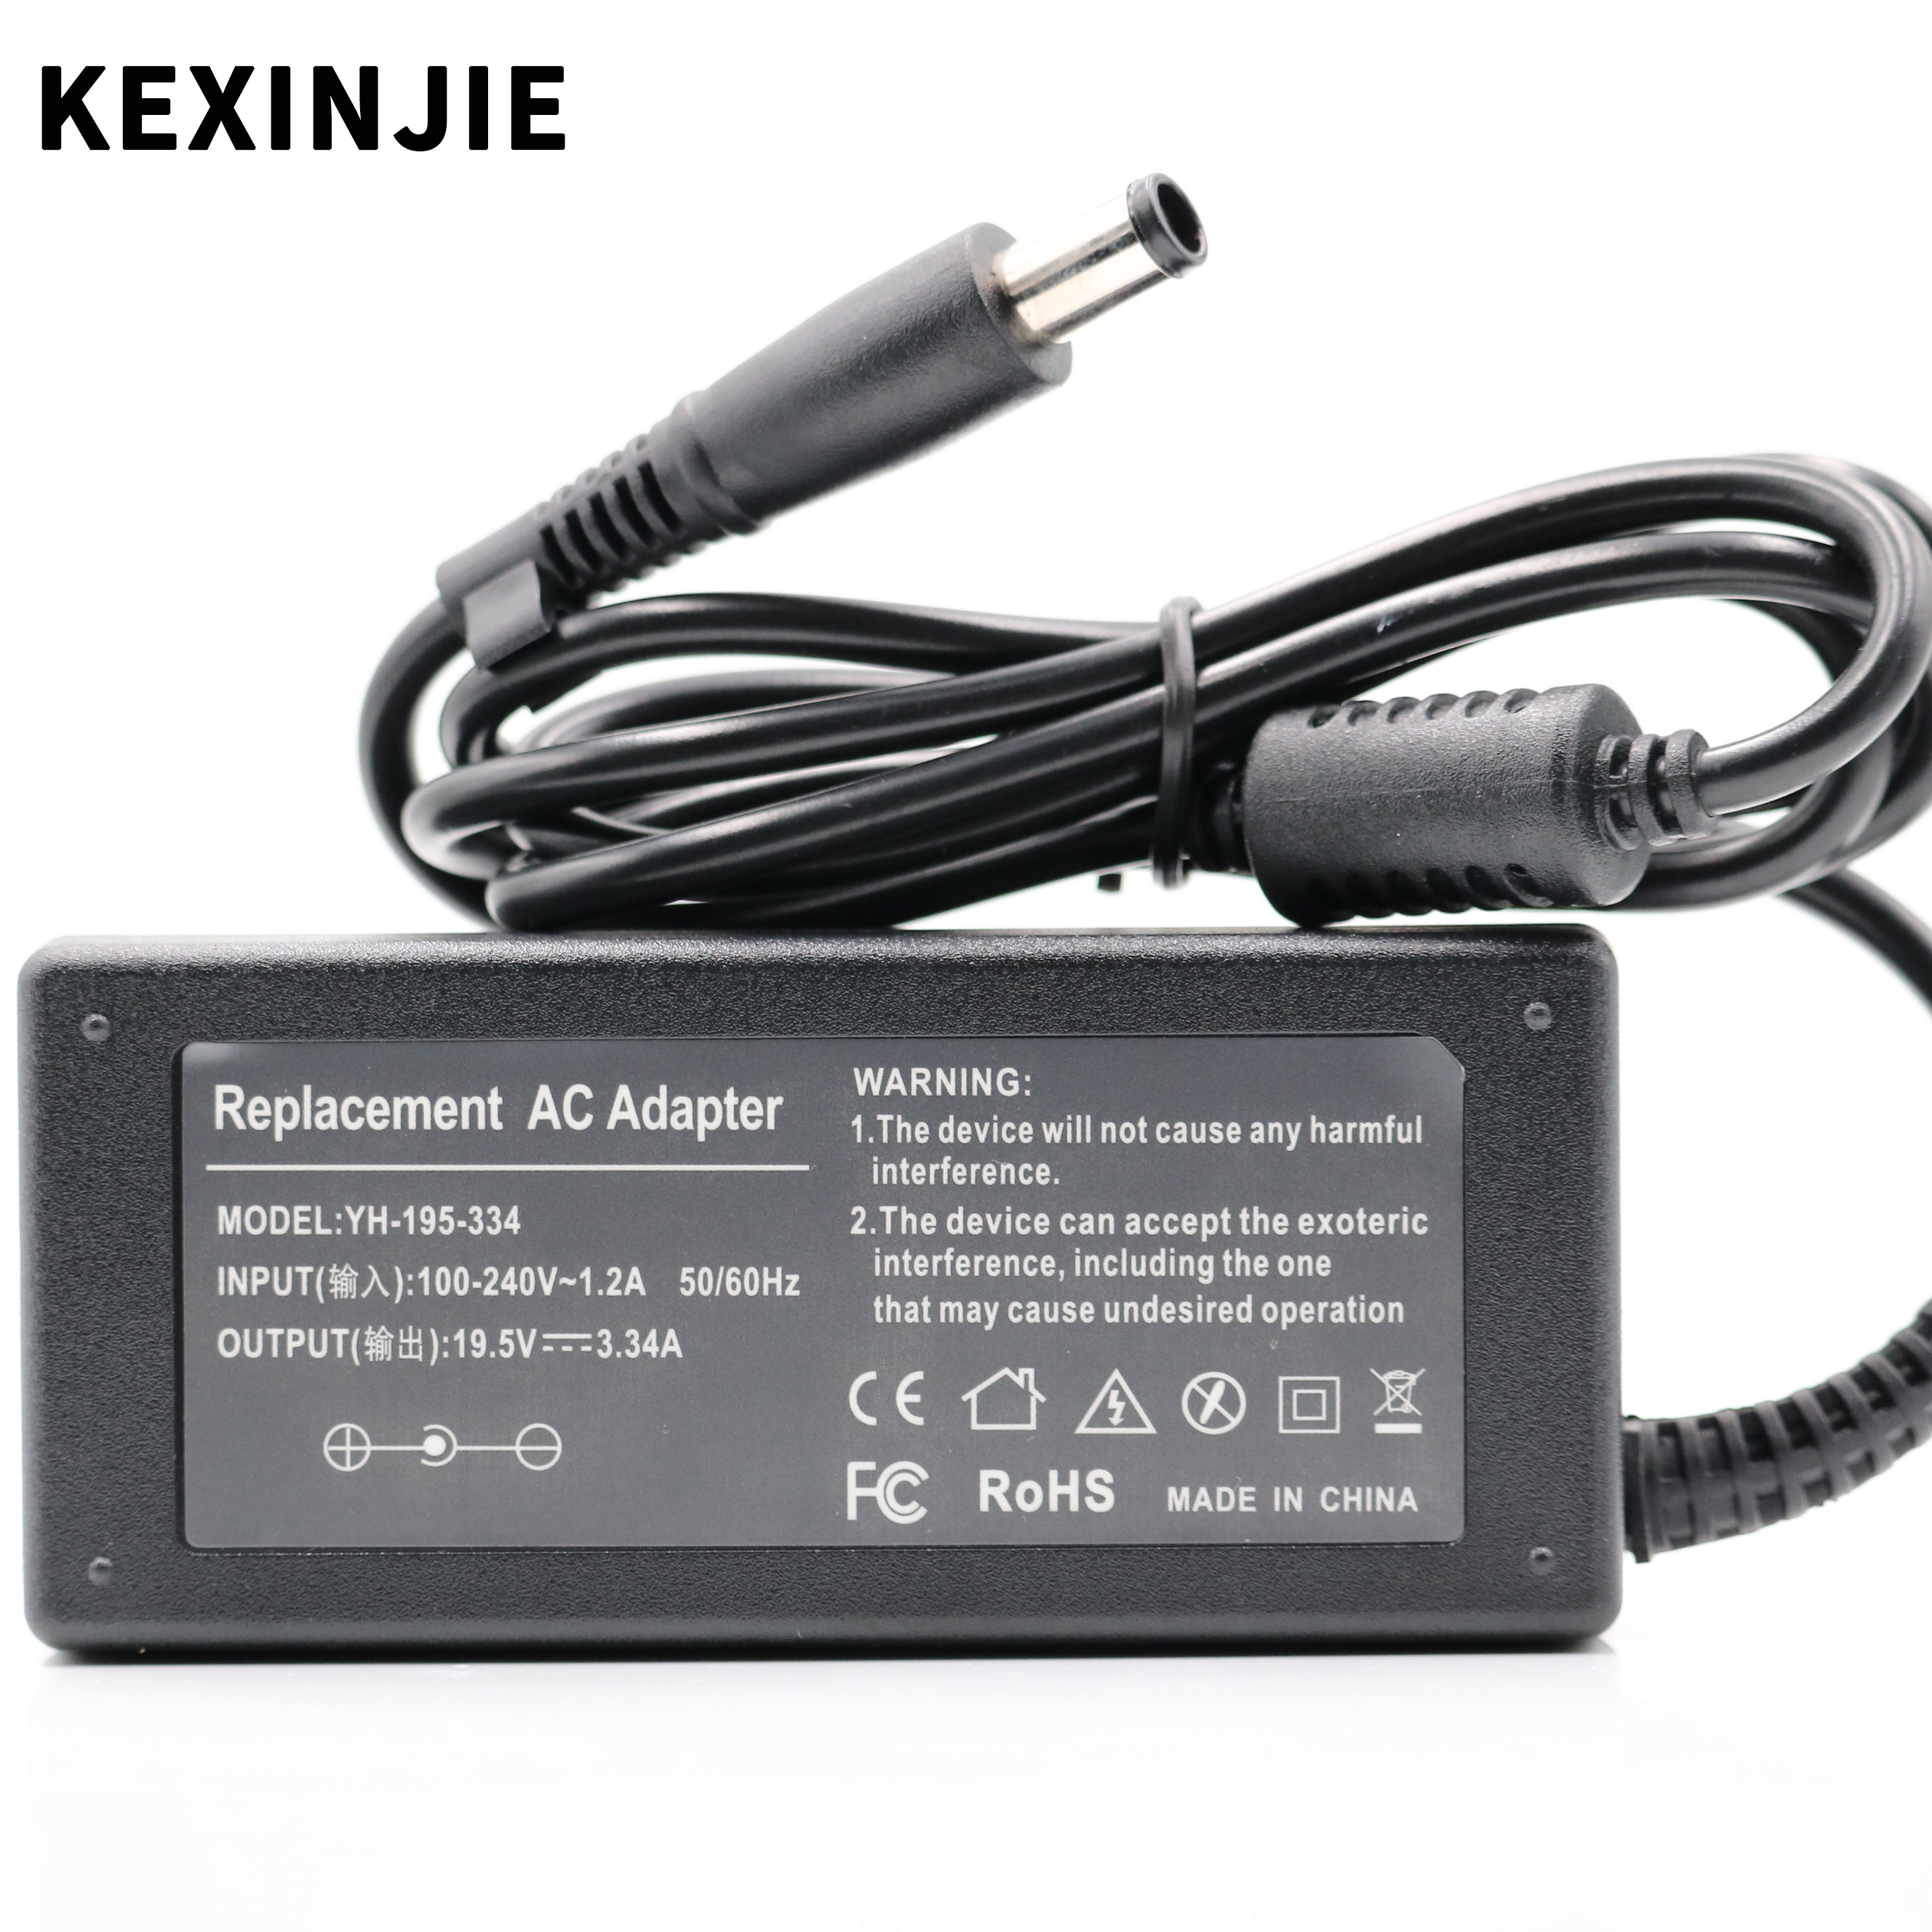 65W 19.5V 3.34A For Dell Inspiron 15 1750 1545 1525 6000 8600 PA12 XPS M1330 PA-12 AC Laptop Adapter Charger Power Supply